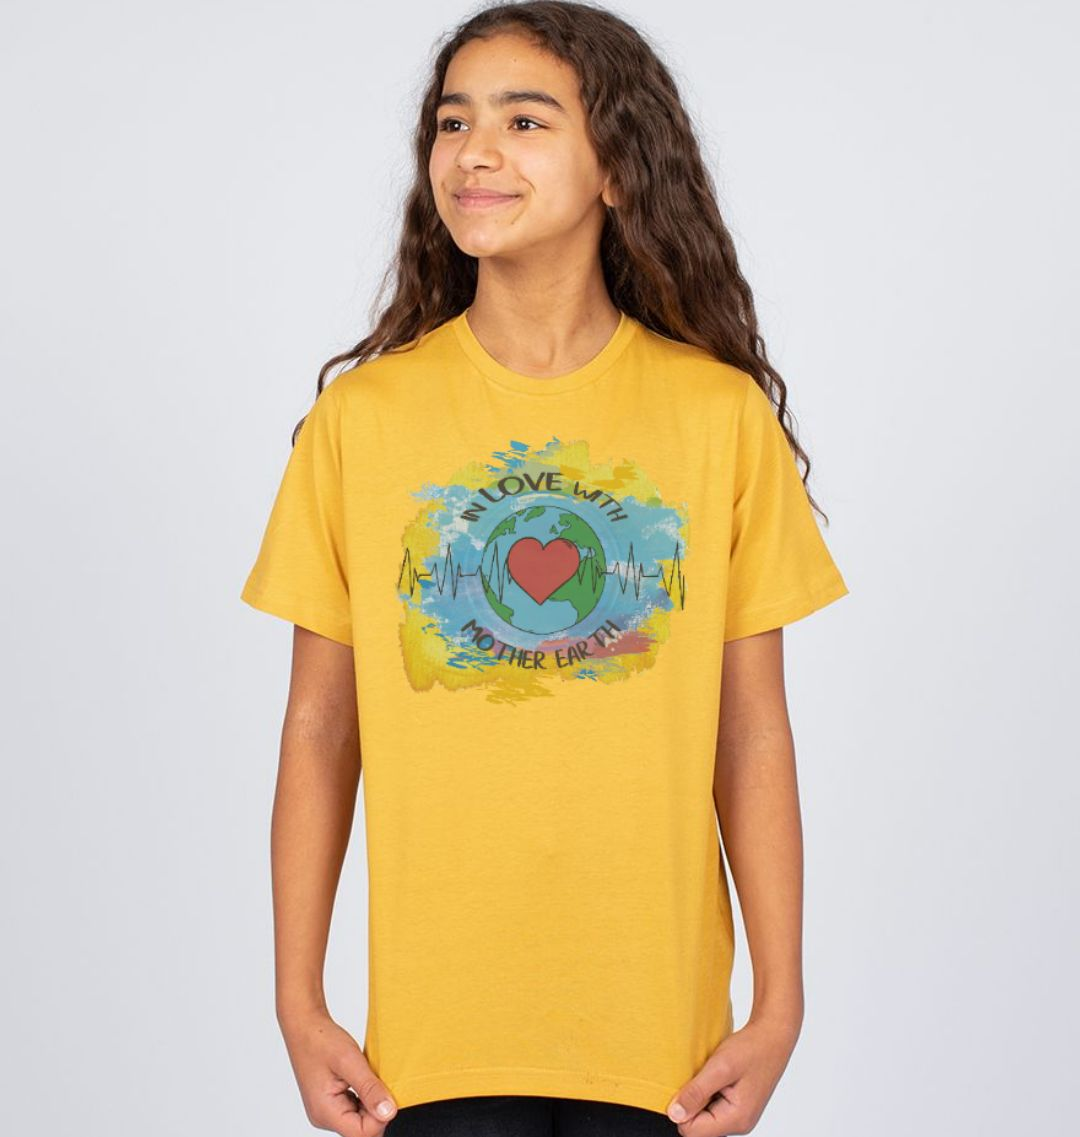 Children's Climate T Shirt 'In Love With Mother Earth' Soft Organic Cotton mustard yellow